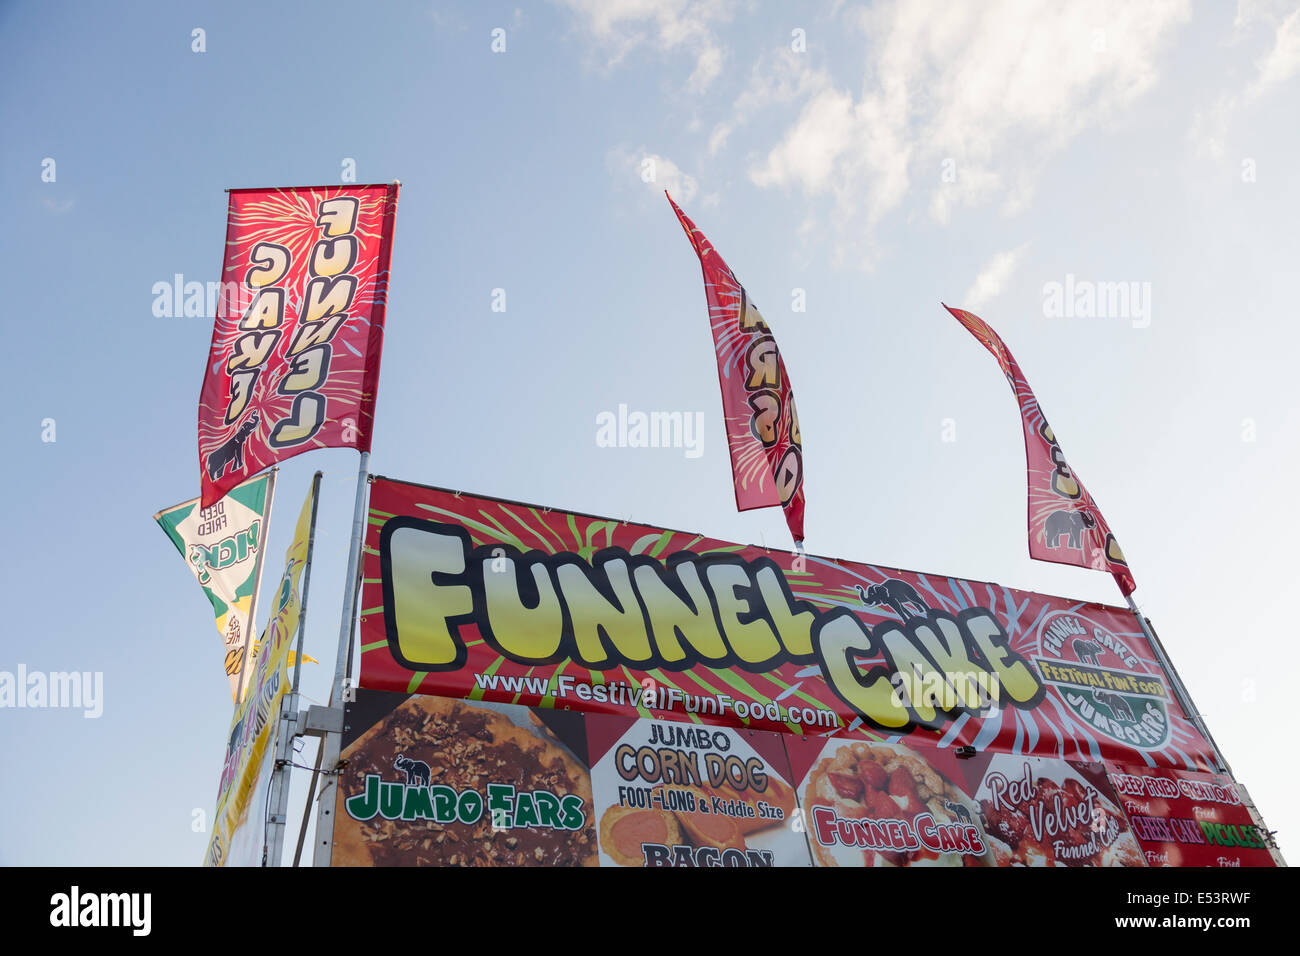 Funnel cake stock photos funnel cake stock images alamy for Sugarloaf craft festival nj